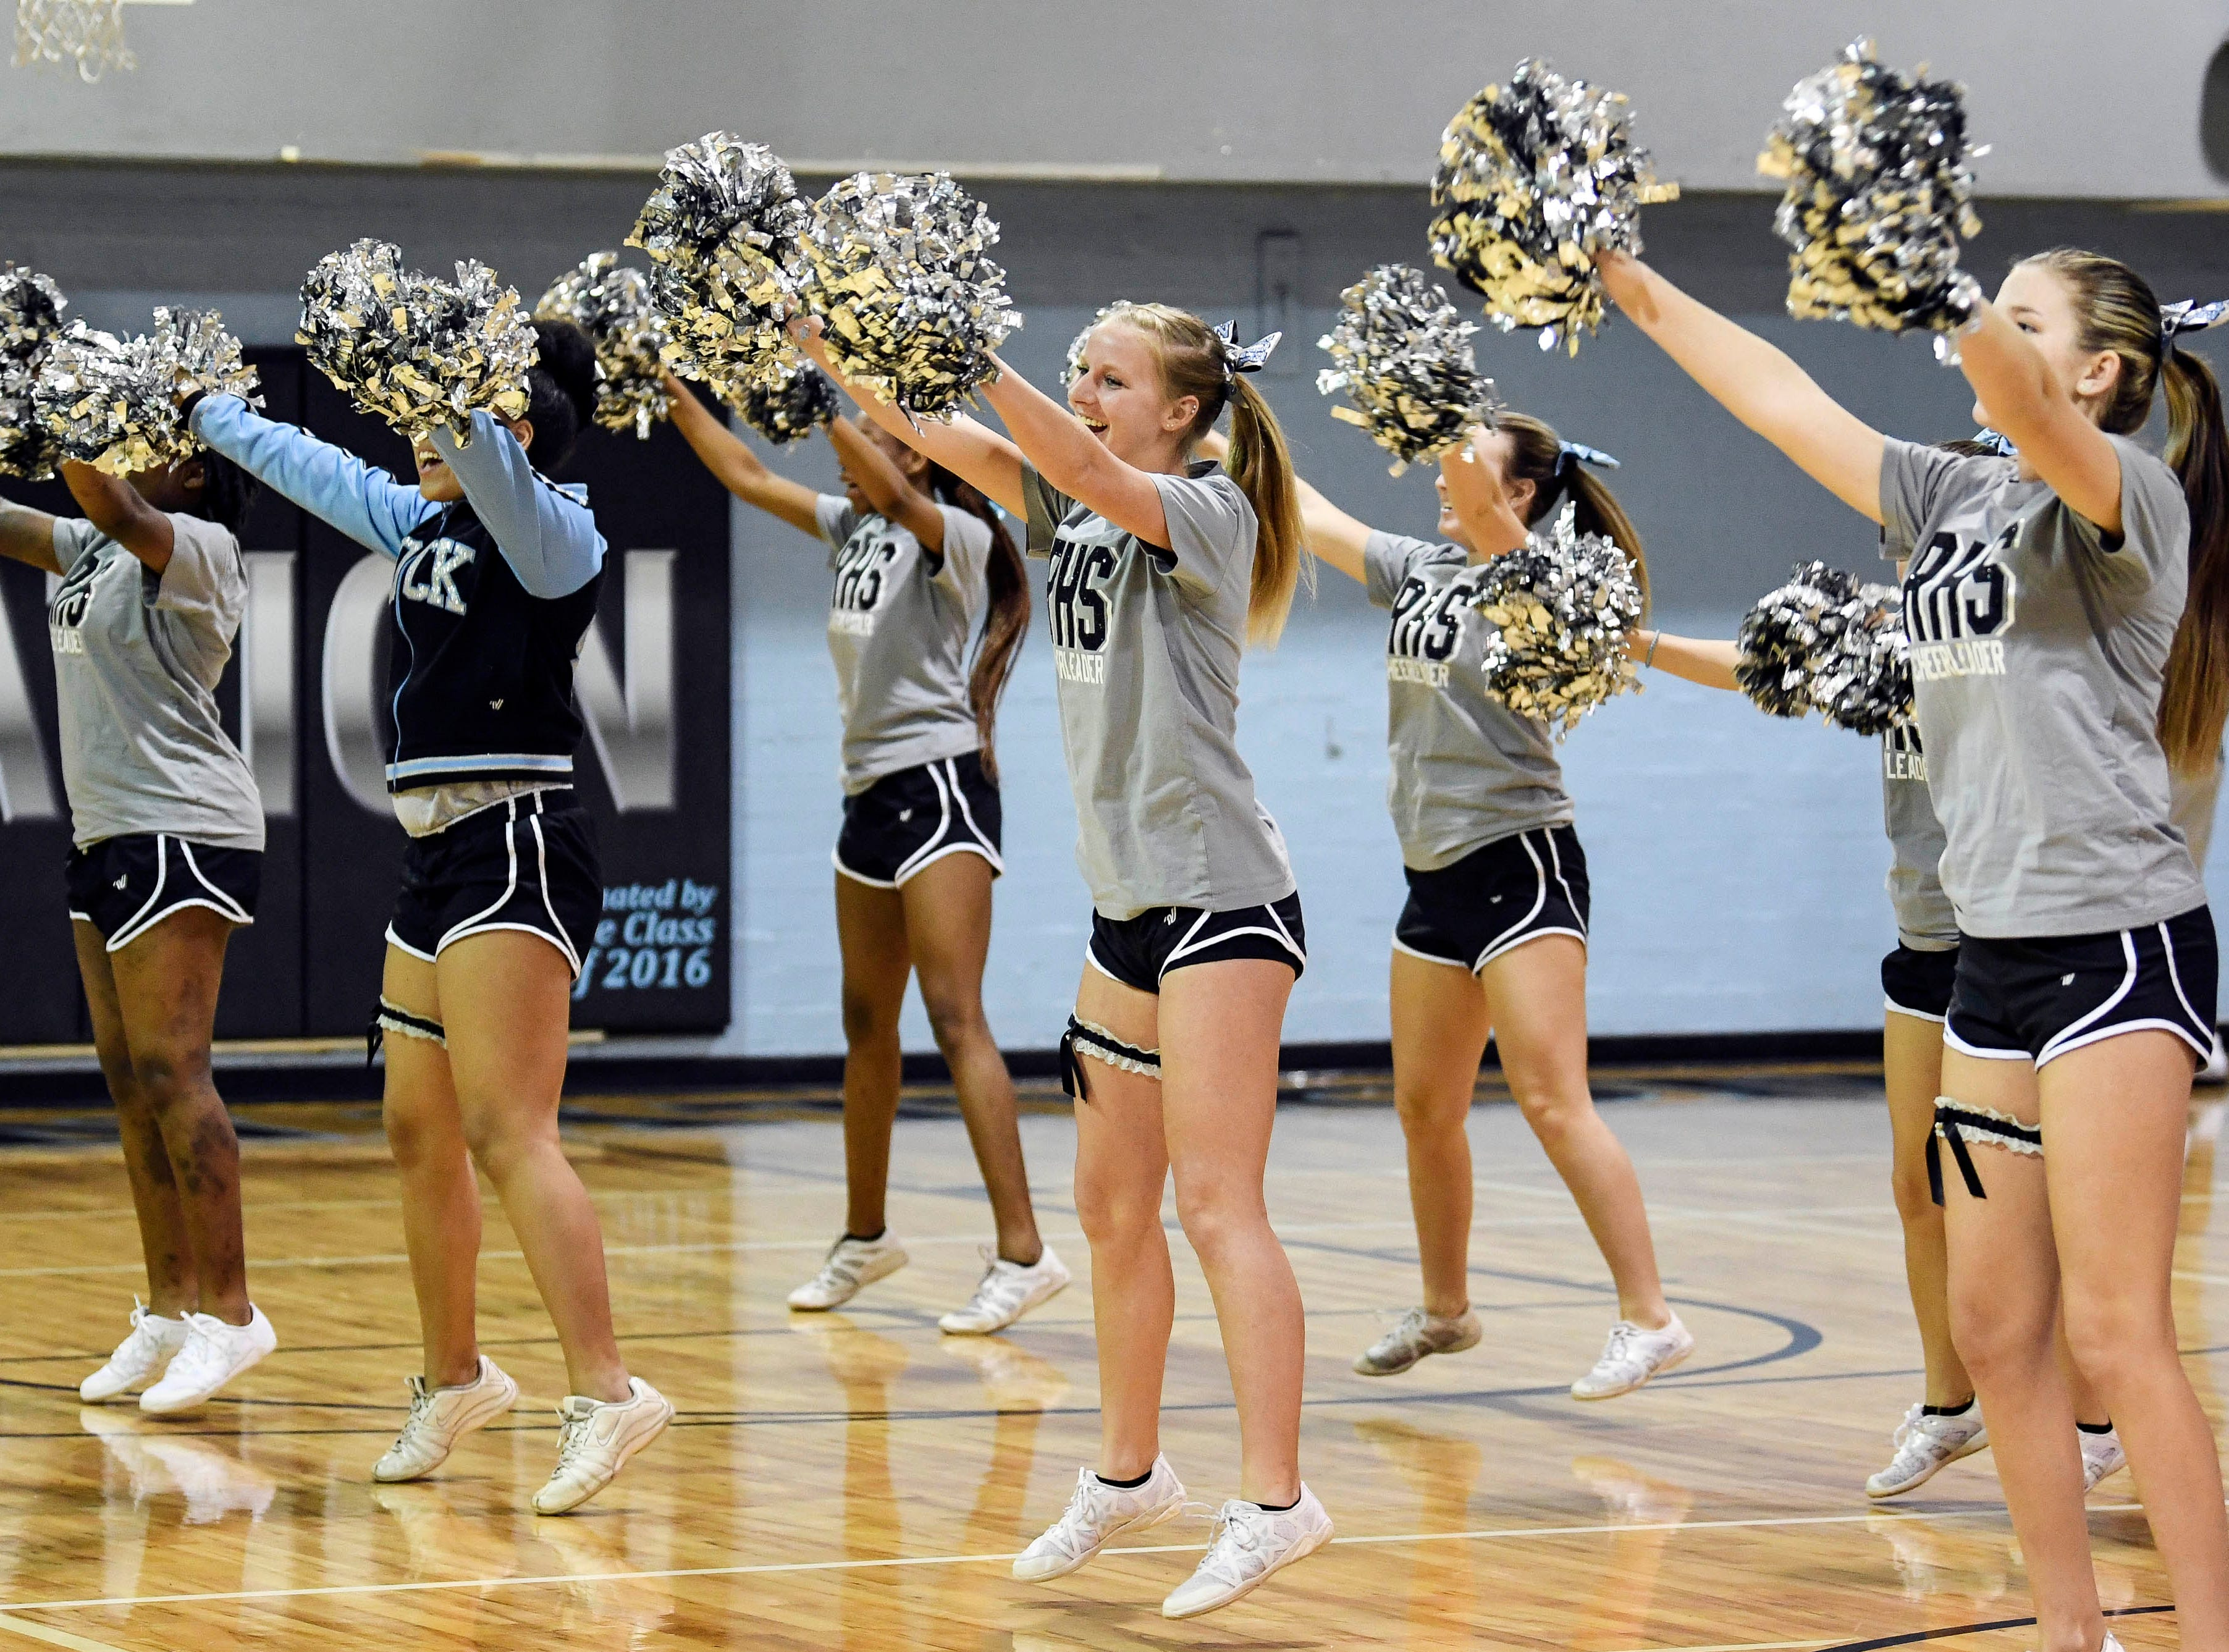 The Rockledge cheerleaders perform during District 14-6A basketball tournament at Rockledge High School.